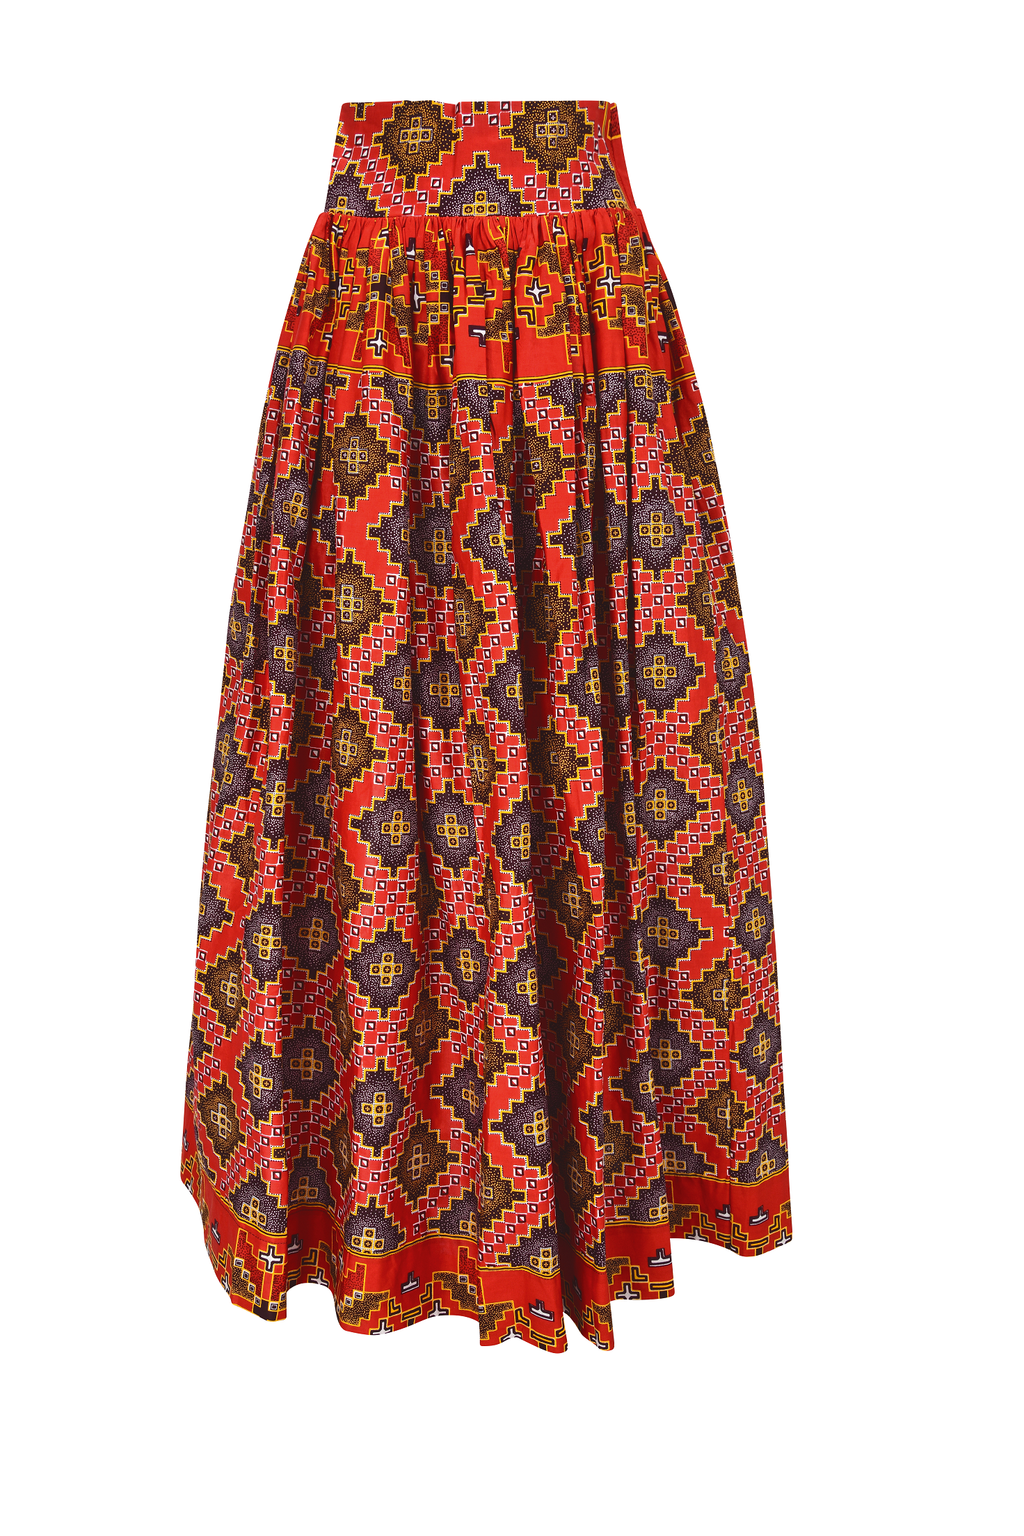 Kobou African clothes long skirts - yalinat